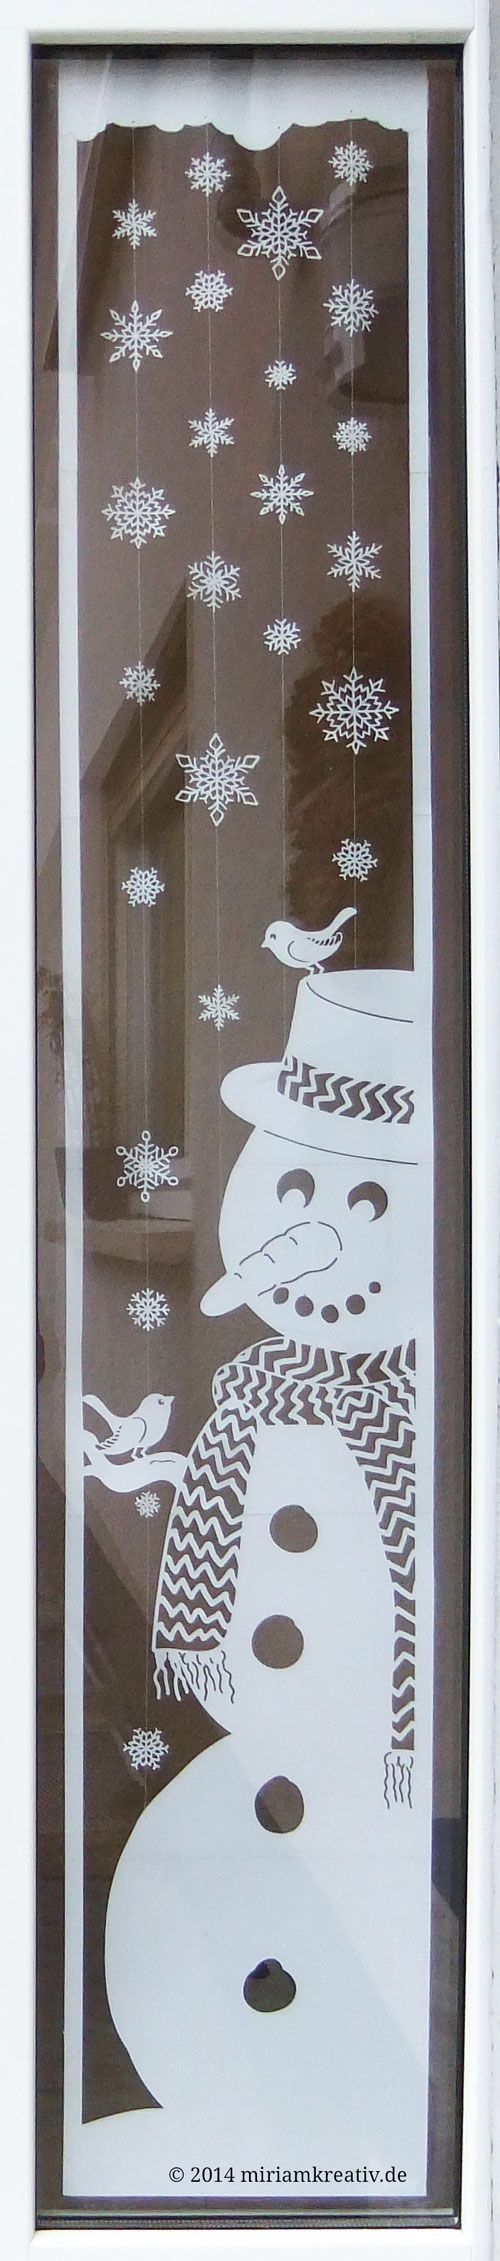 Wintertuer_winterdoor Silhouette Cameo + SVG Datei repinned by…